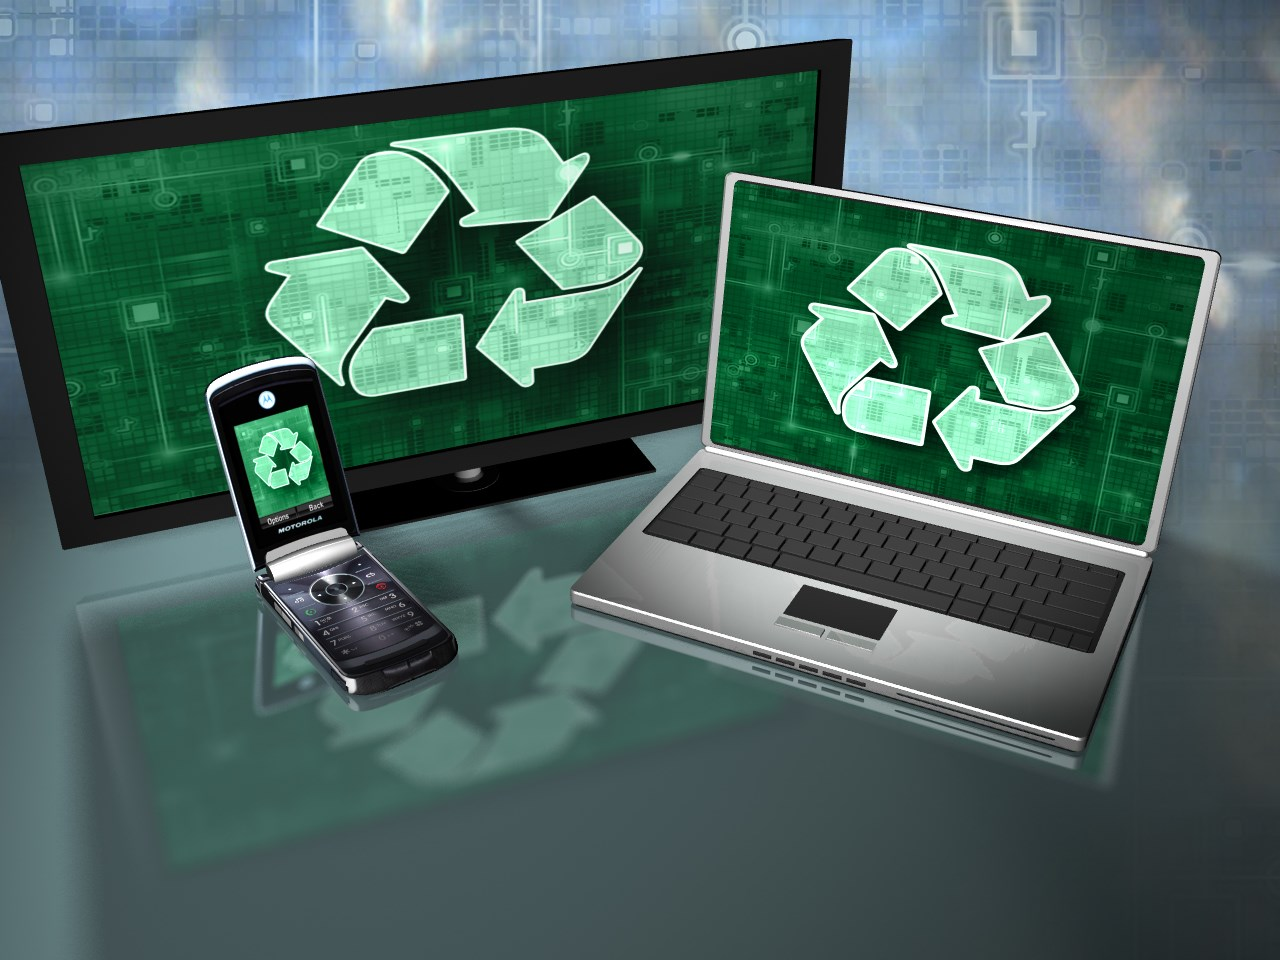 electronics recycling_1490633809741.jpg